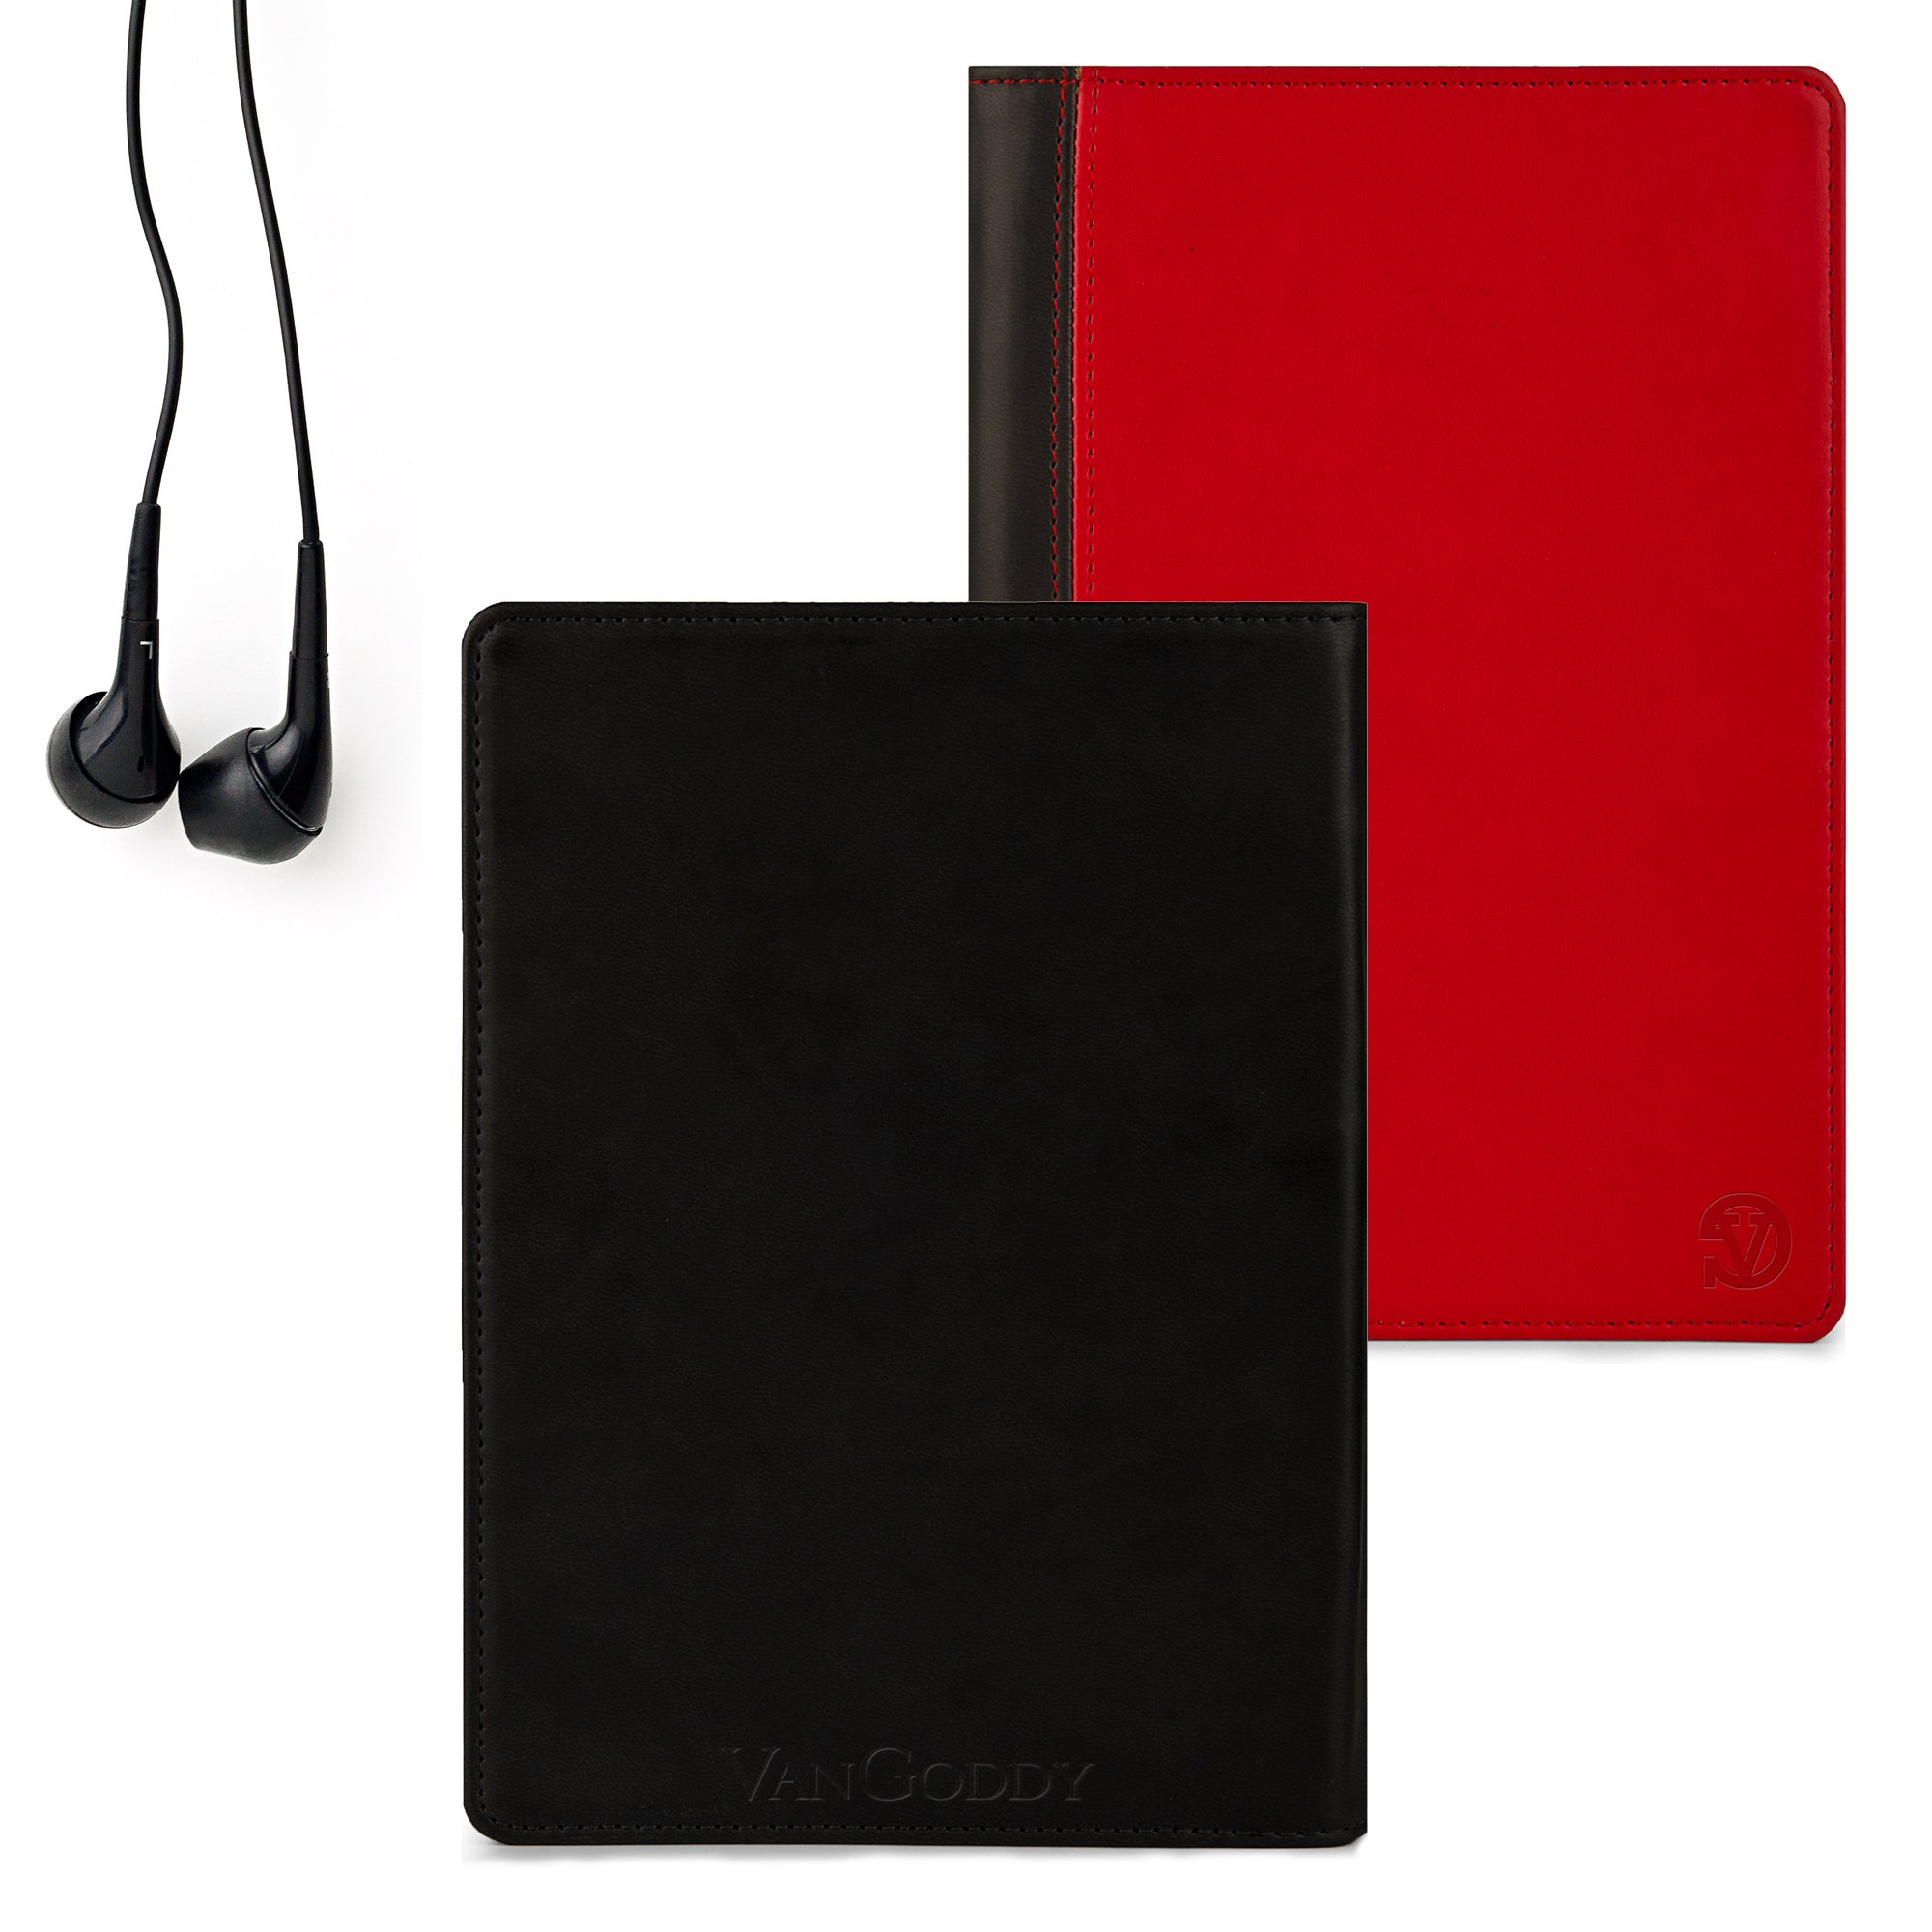 Quality Book Style, Red on Black Vangoddy Brand Mary Collection Leather -ette Portfolio Cover Cases for All Models of the Pantech Element P4100 8-inch HD Waterproof Android Tablet + Compatible Black Earbud Earphones